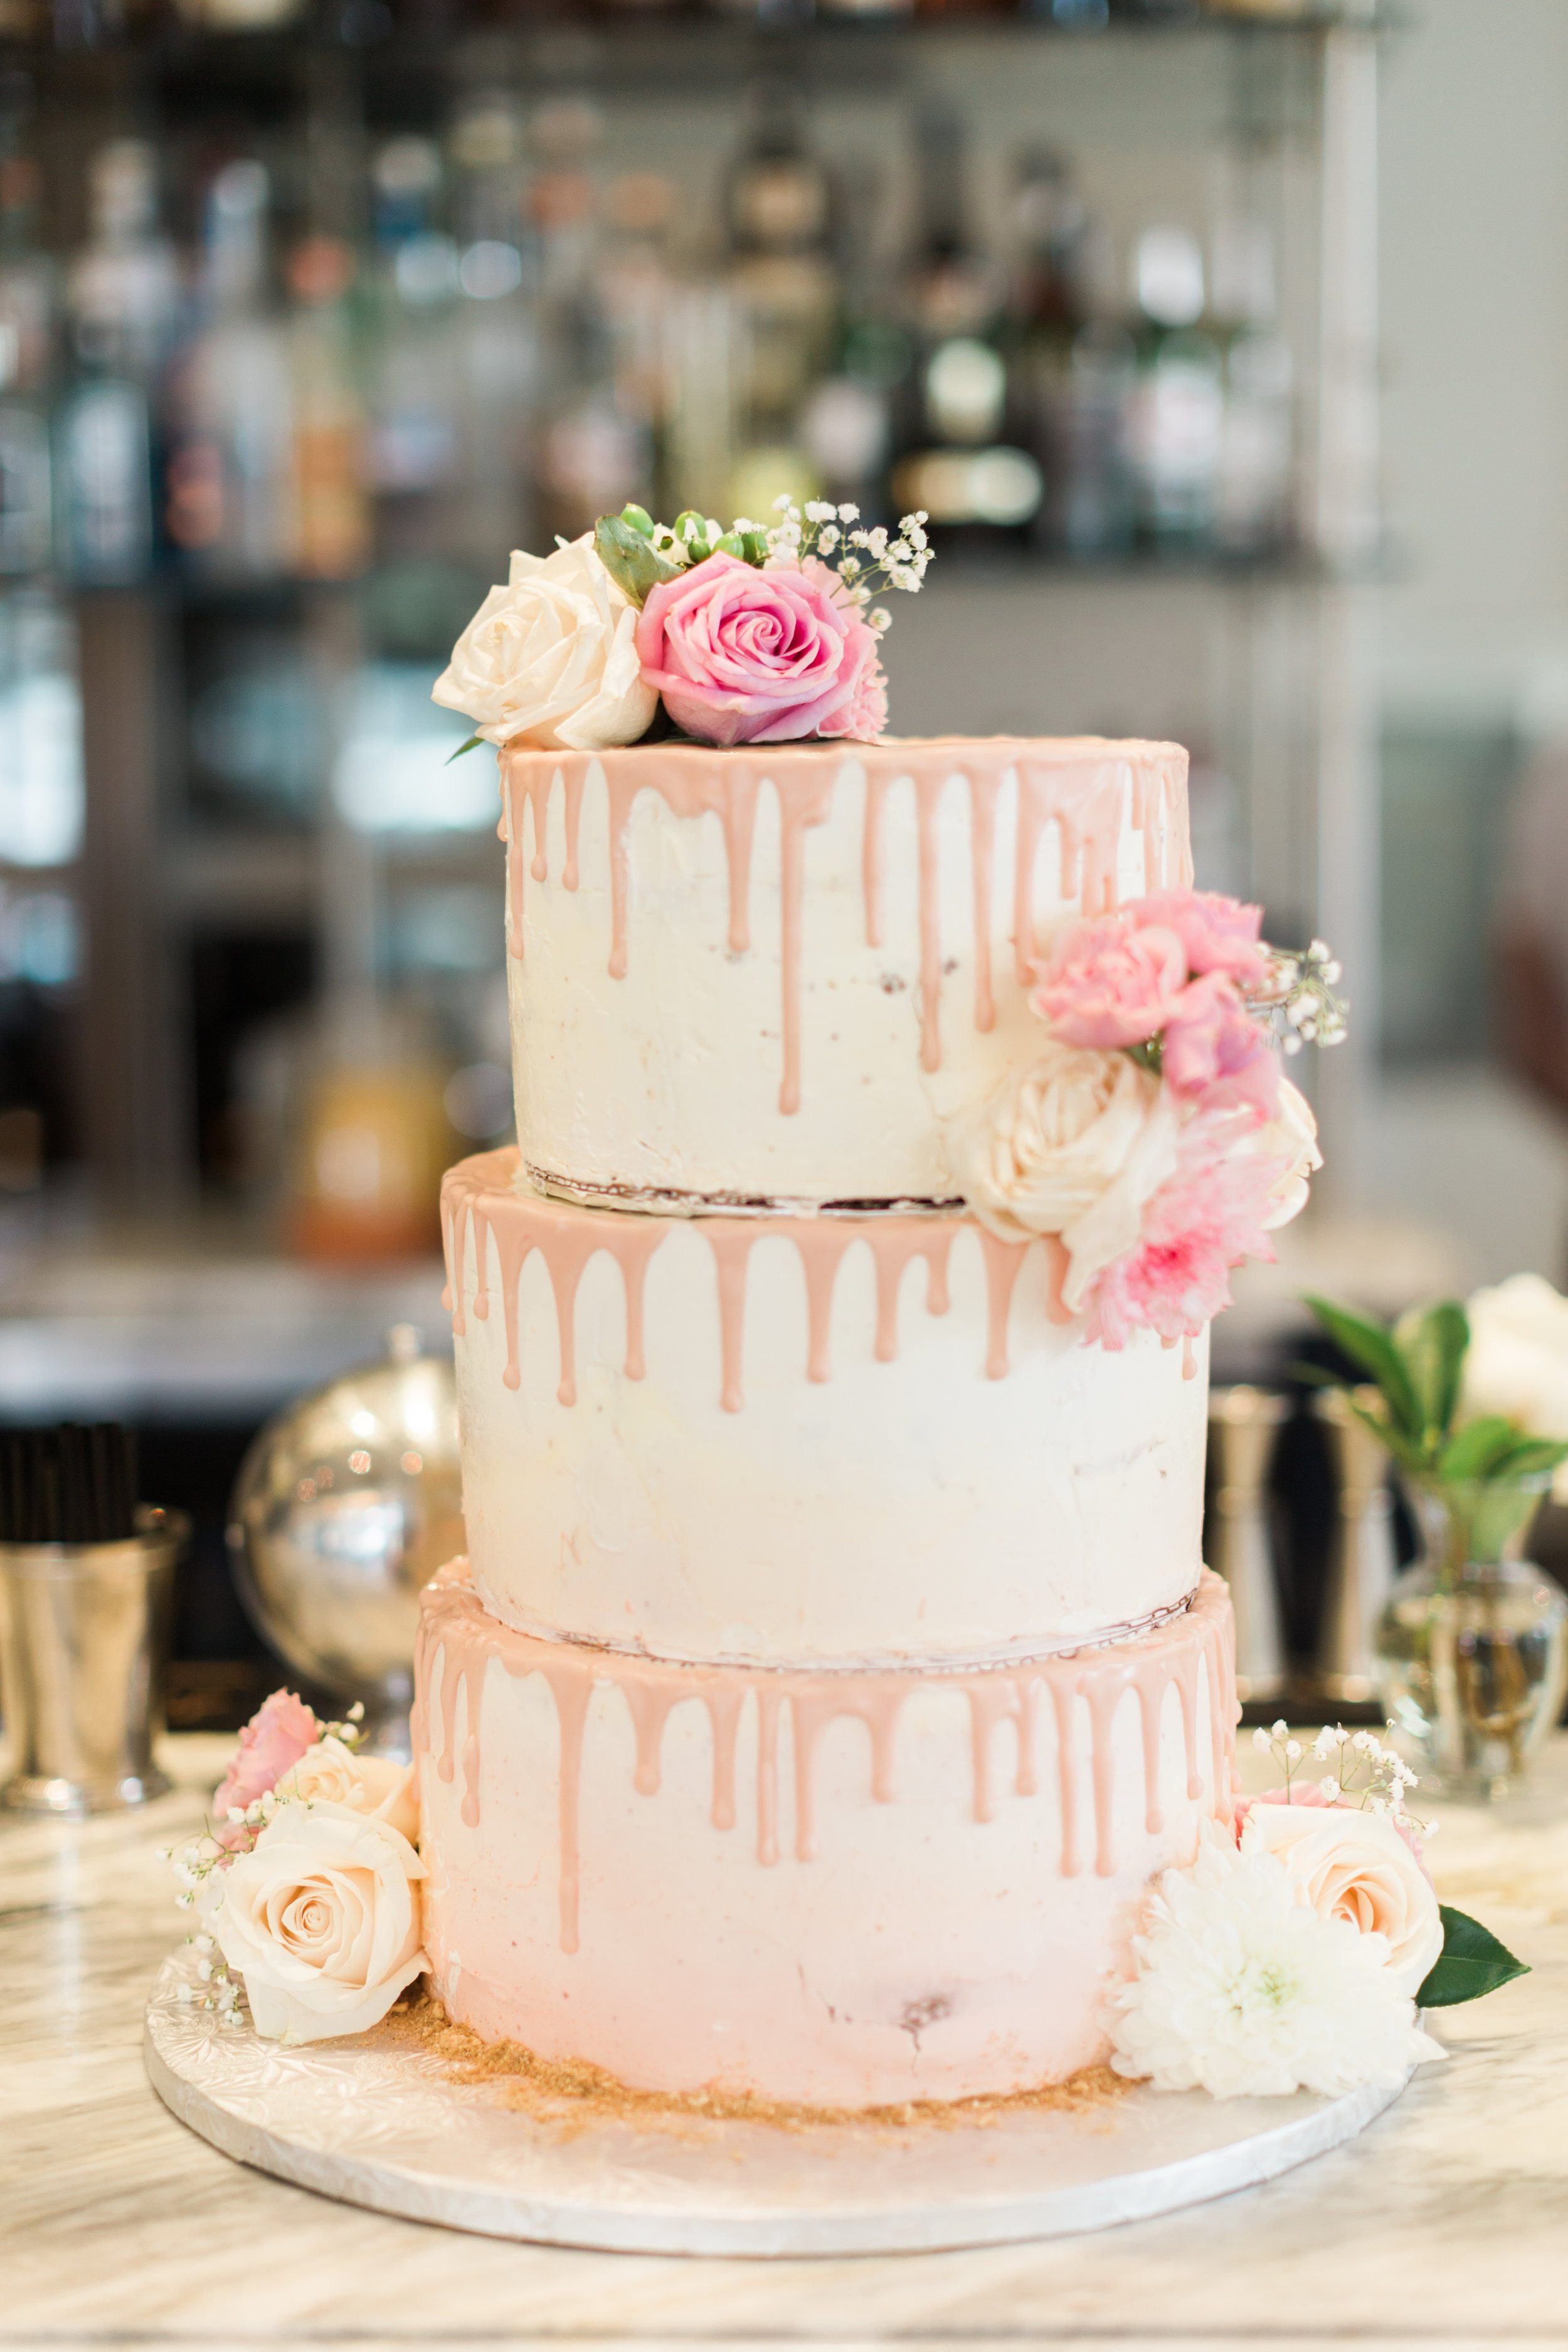 BLUUMBLVD Colette Grand Cafe Wedding - white and pink wedding cake.jpg